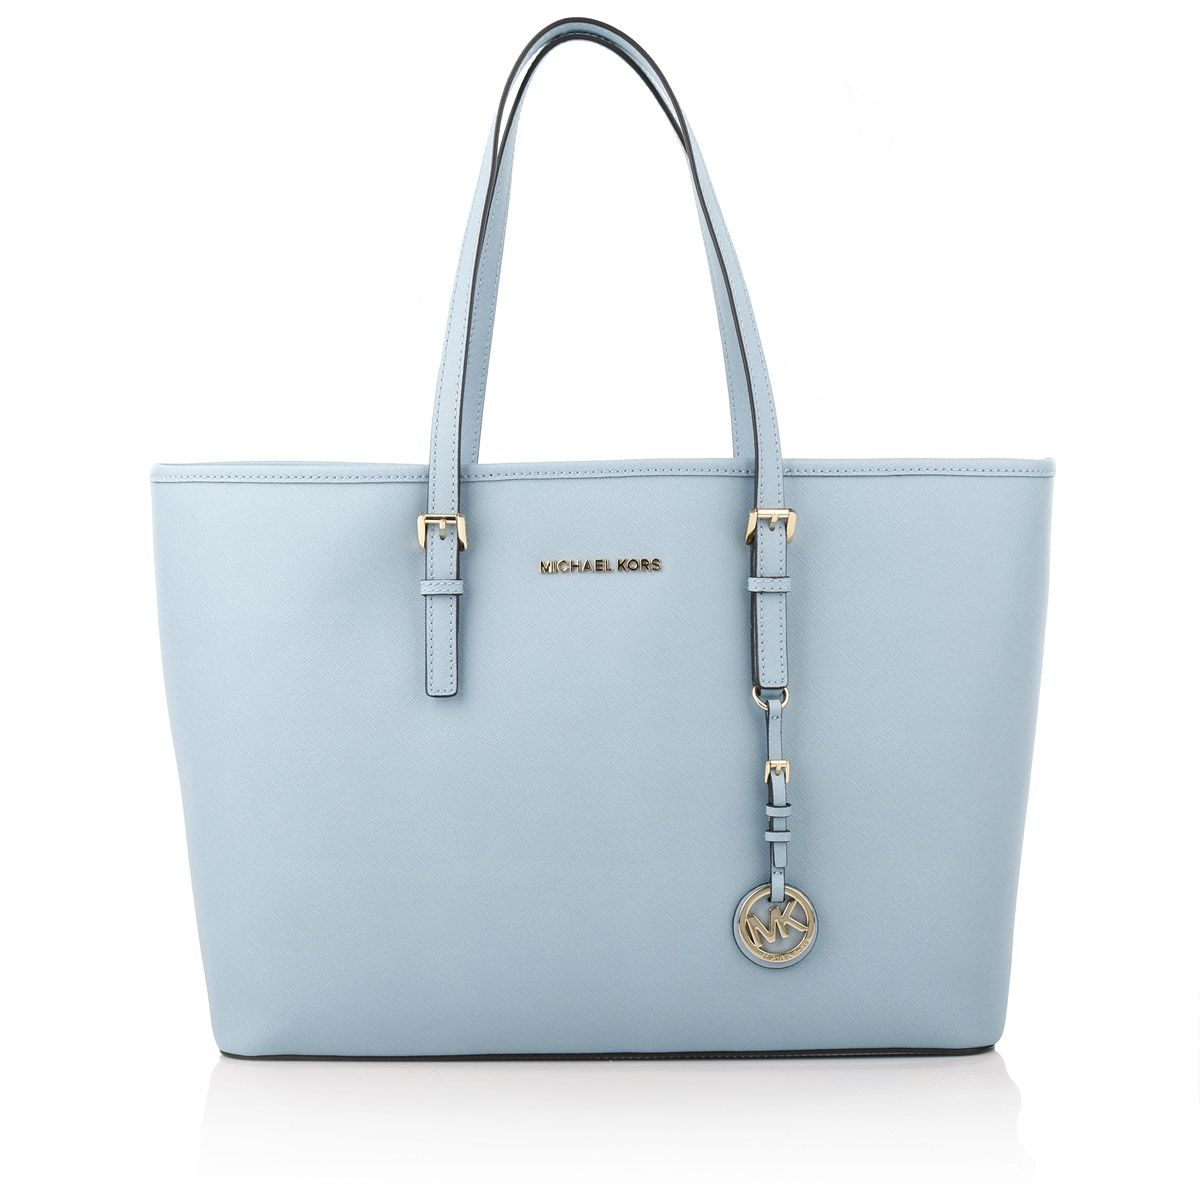 bf21cbf49872 Buy michael kors pale blue tote > OFF59% Discounted